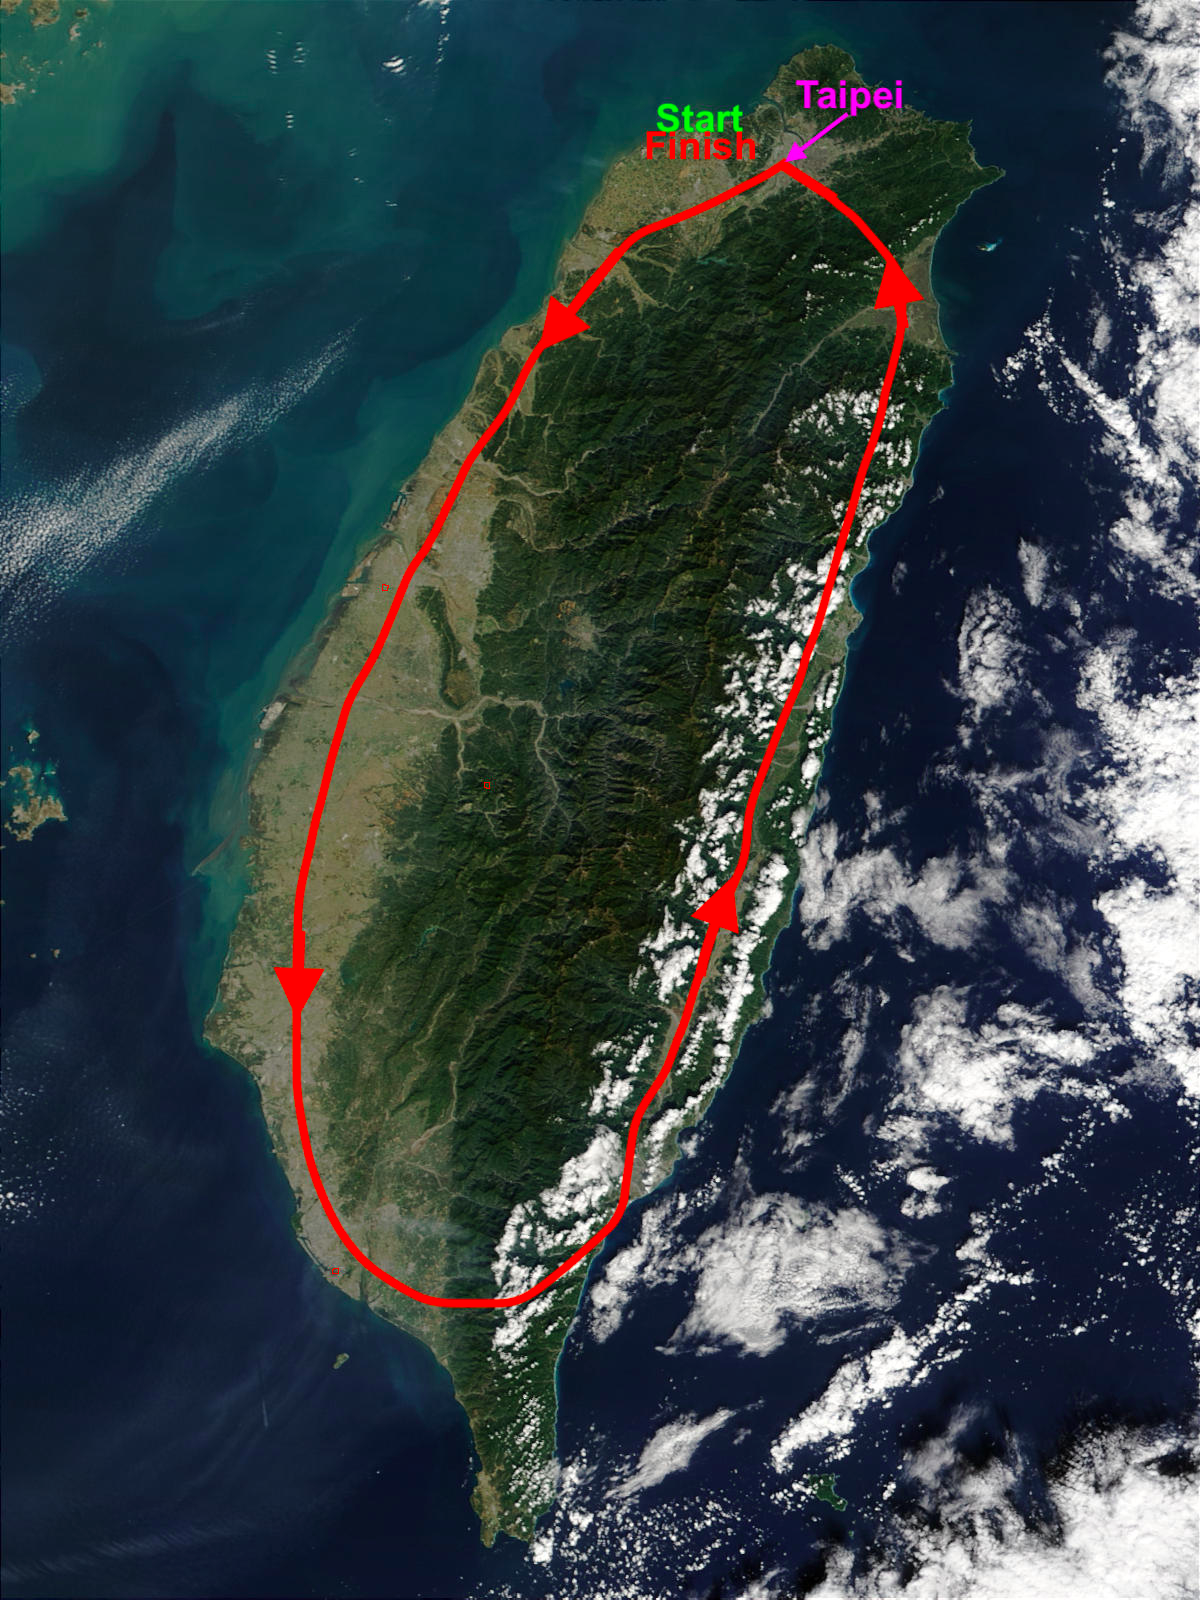 Cyclin in Taiwan route map